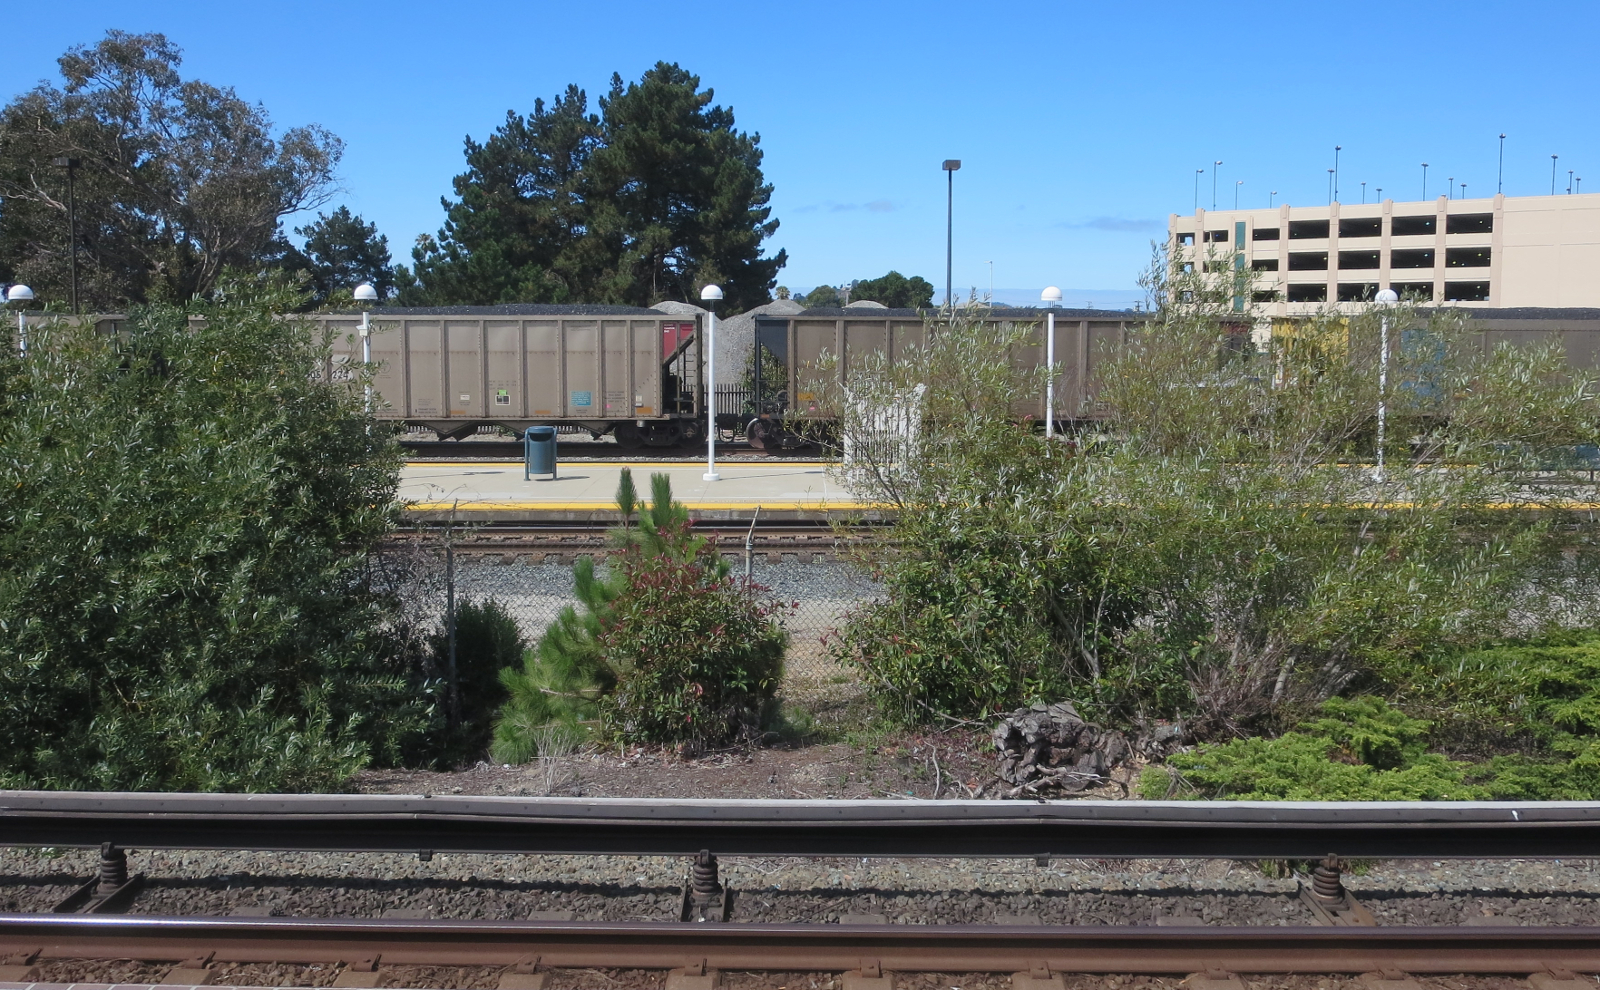 An uncovered coal train rolls past the Richmond BART station, July 11, 2015. Photo credit: Steve Masover.